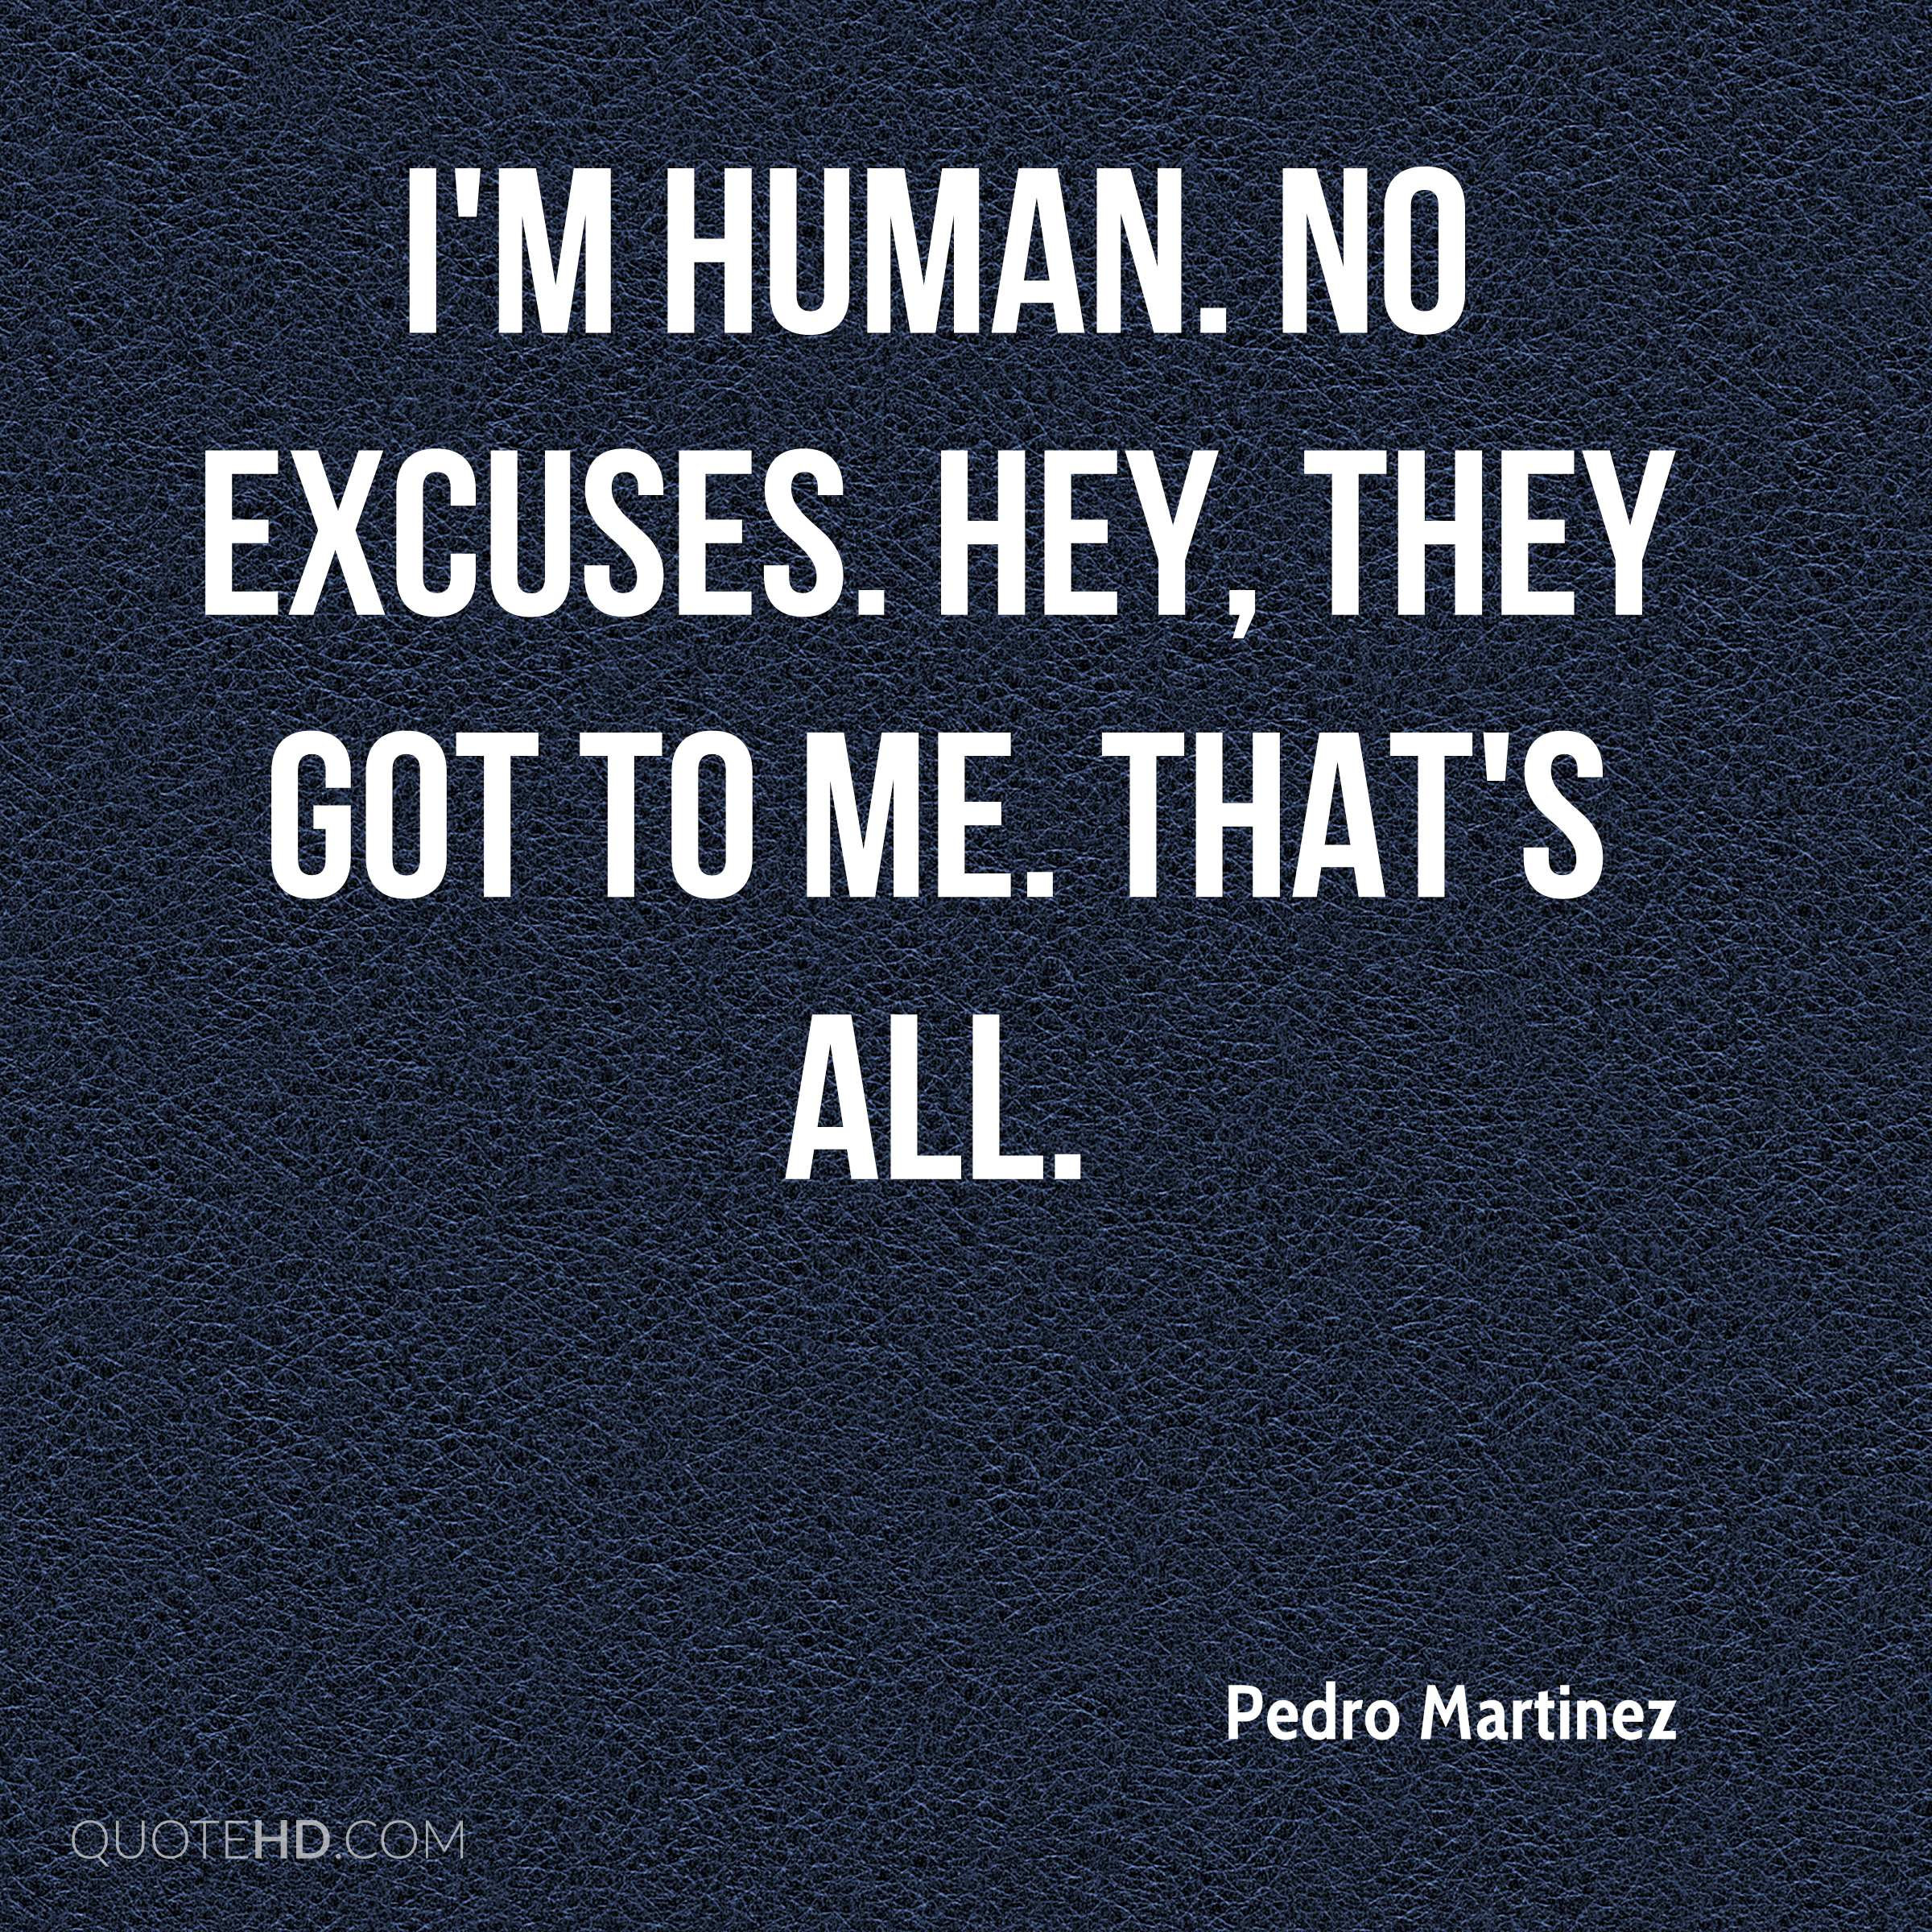 I'm human. No excuses. Hey, they got to me. That's all.